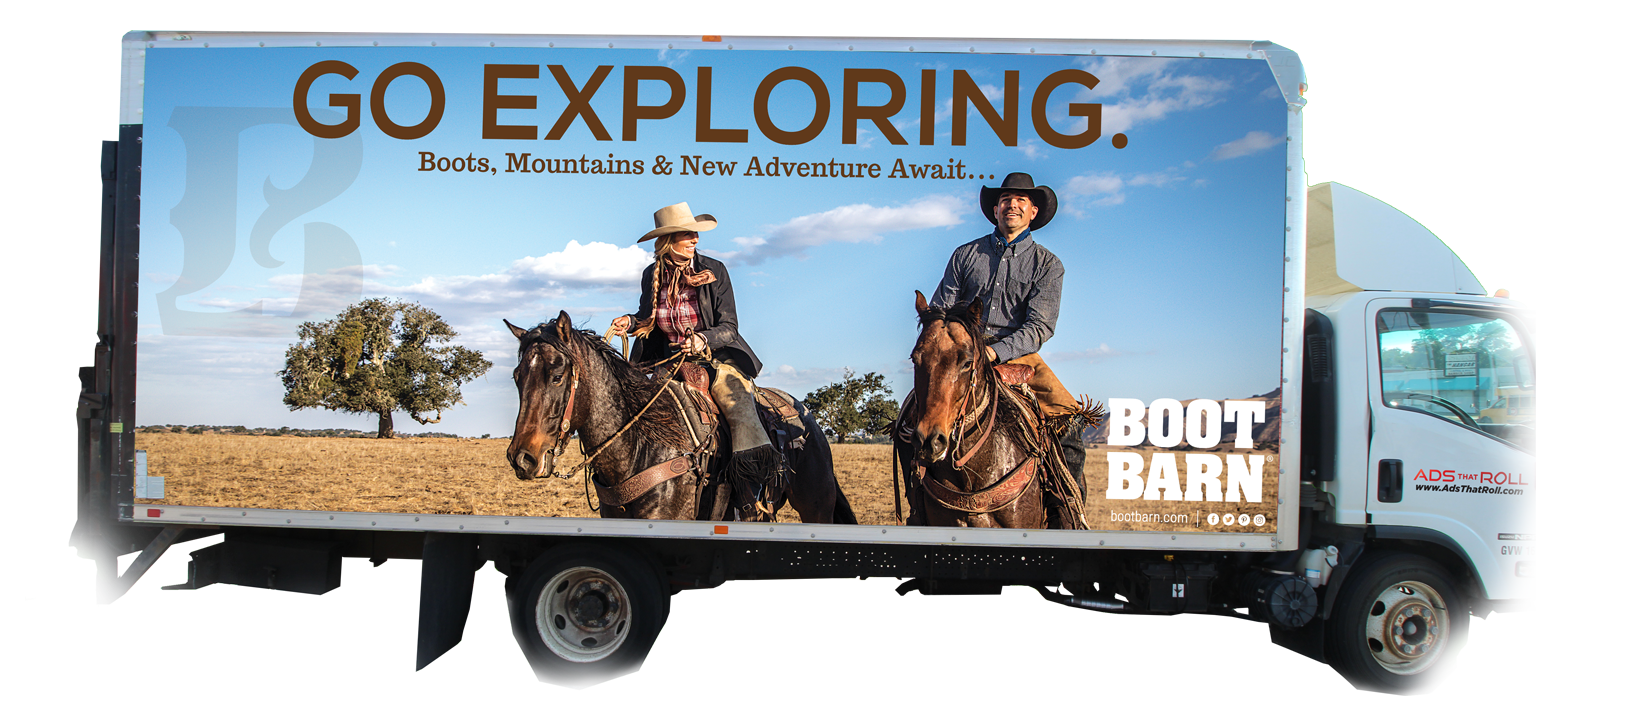 Boot Barn Ads that Roll Box Truck Advertisement